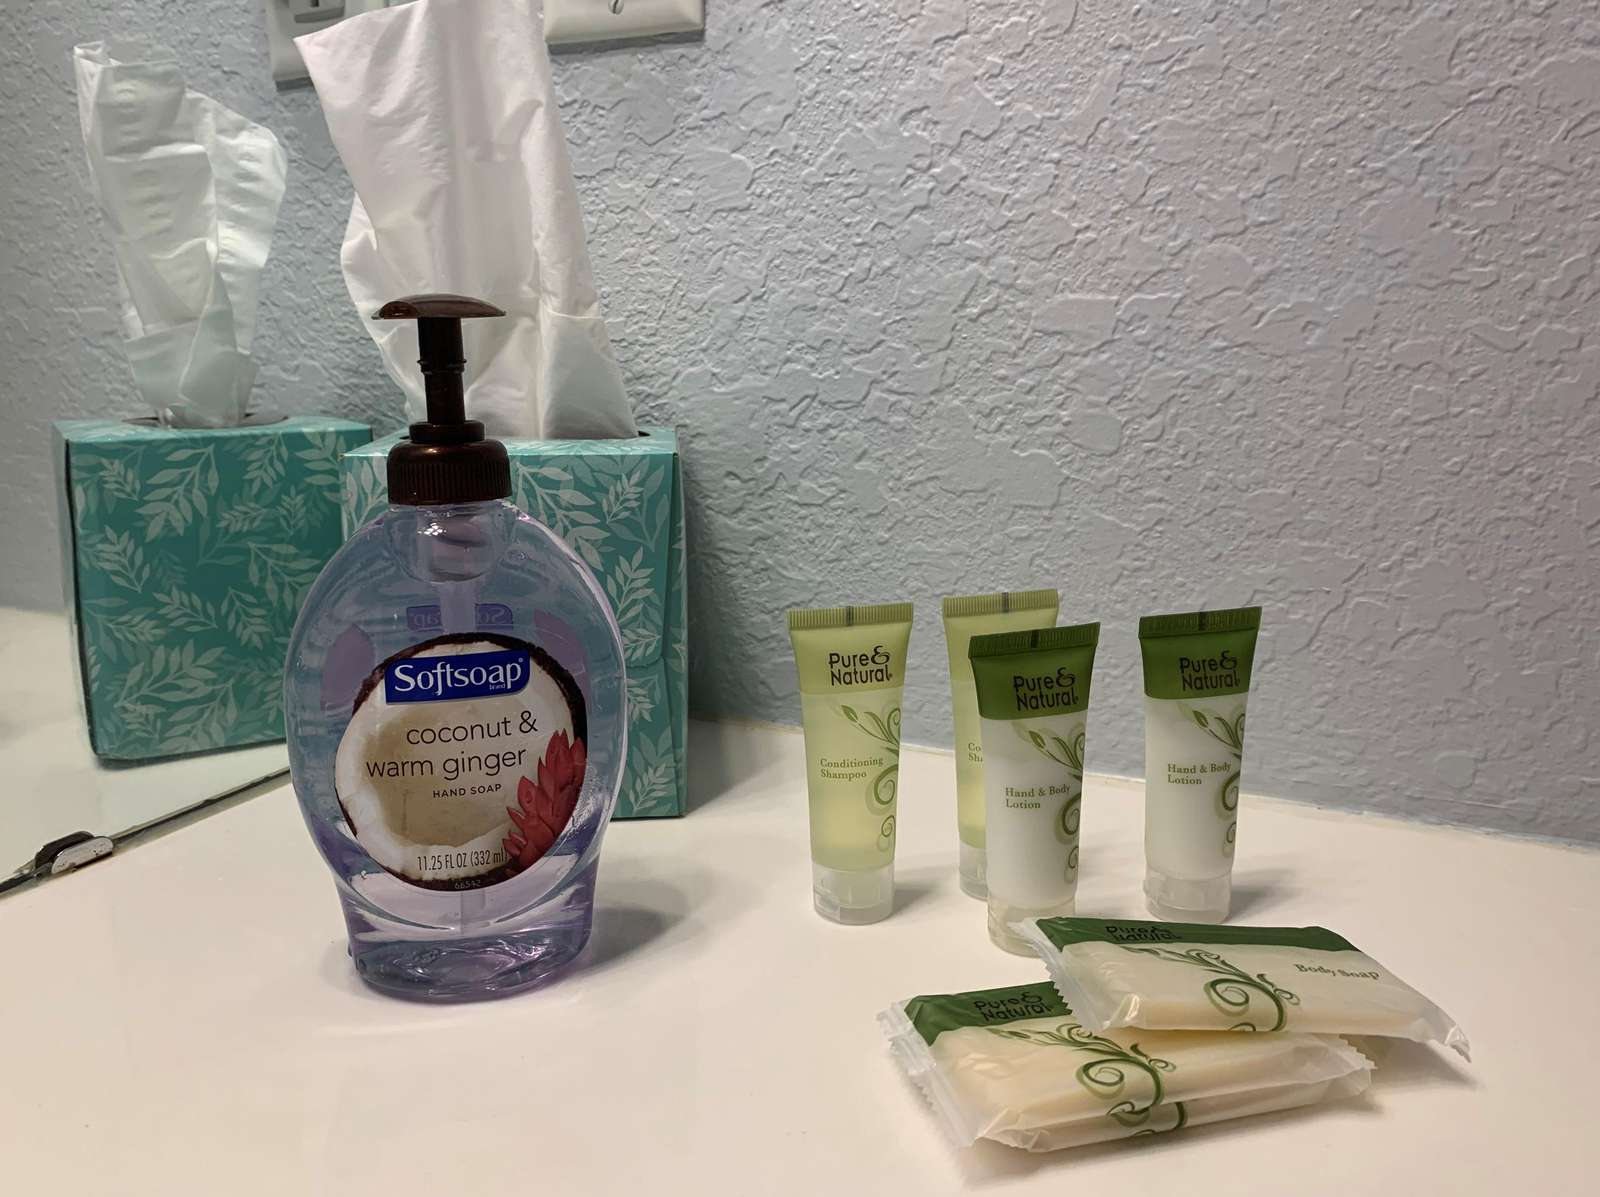 Toiletries guest bathroom